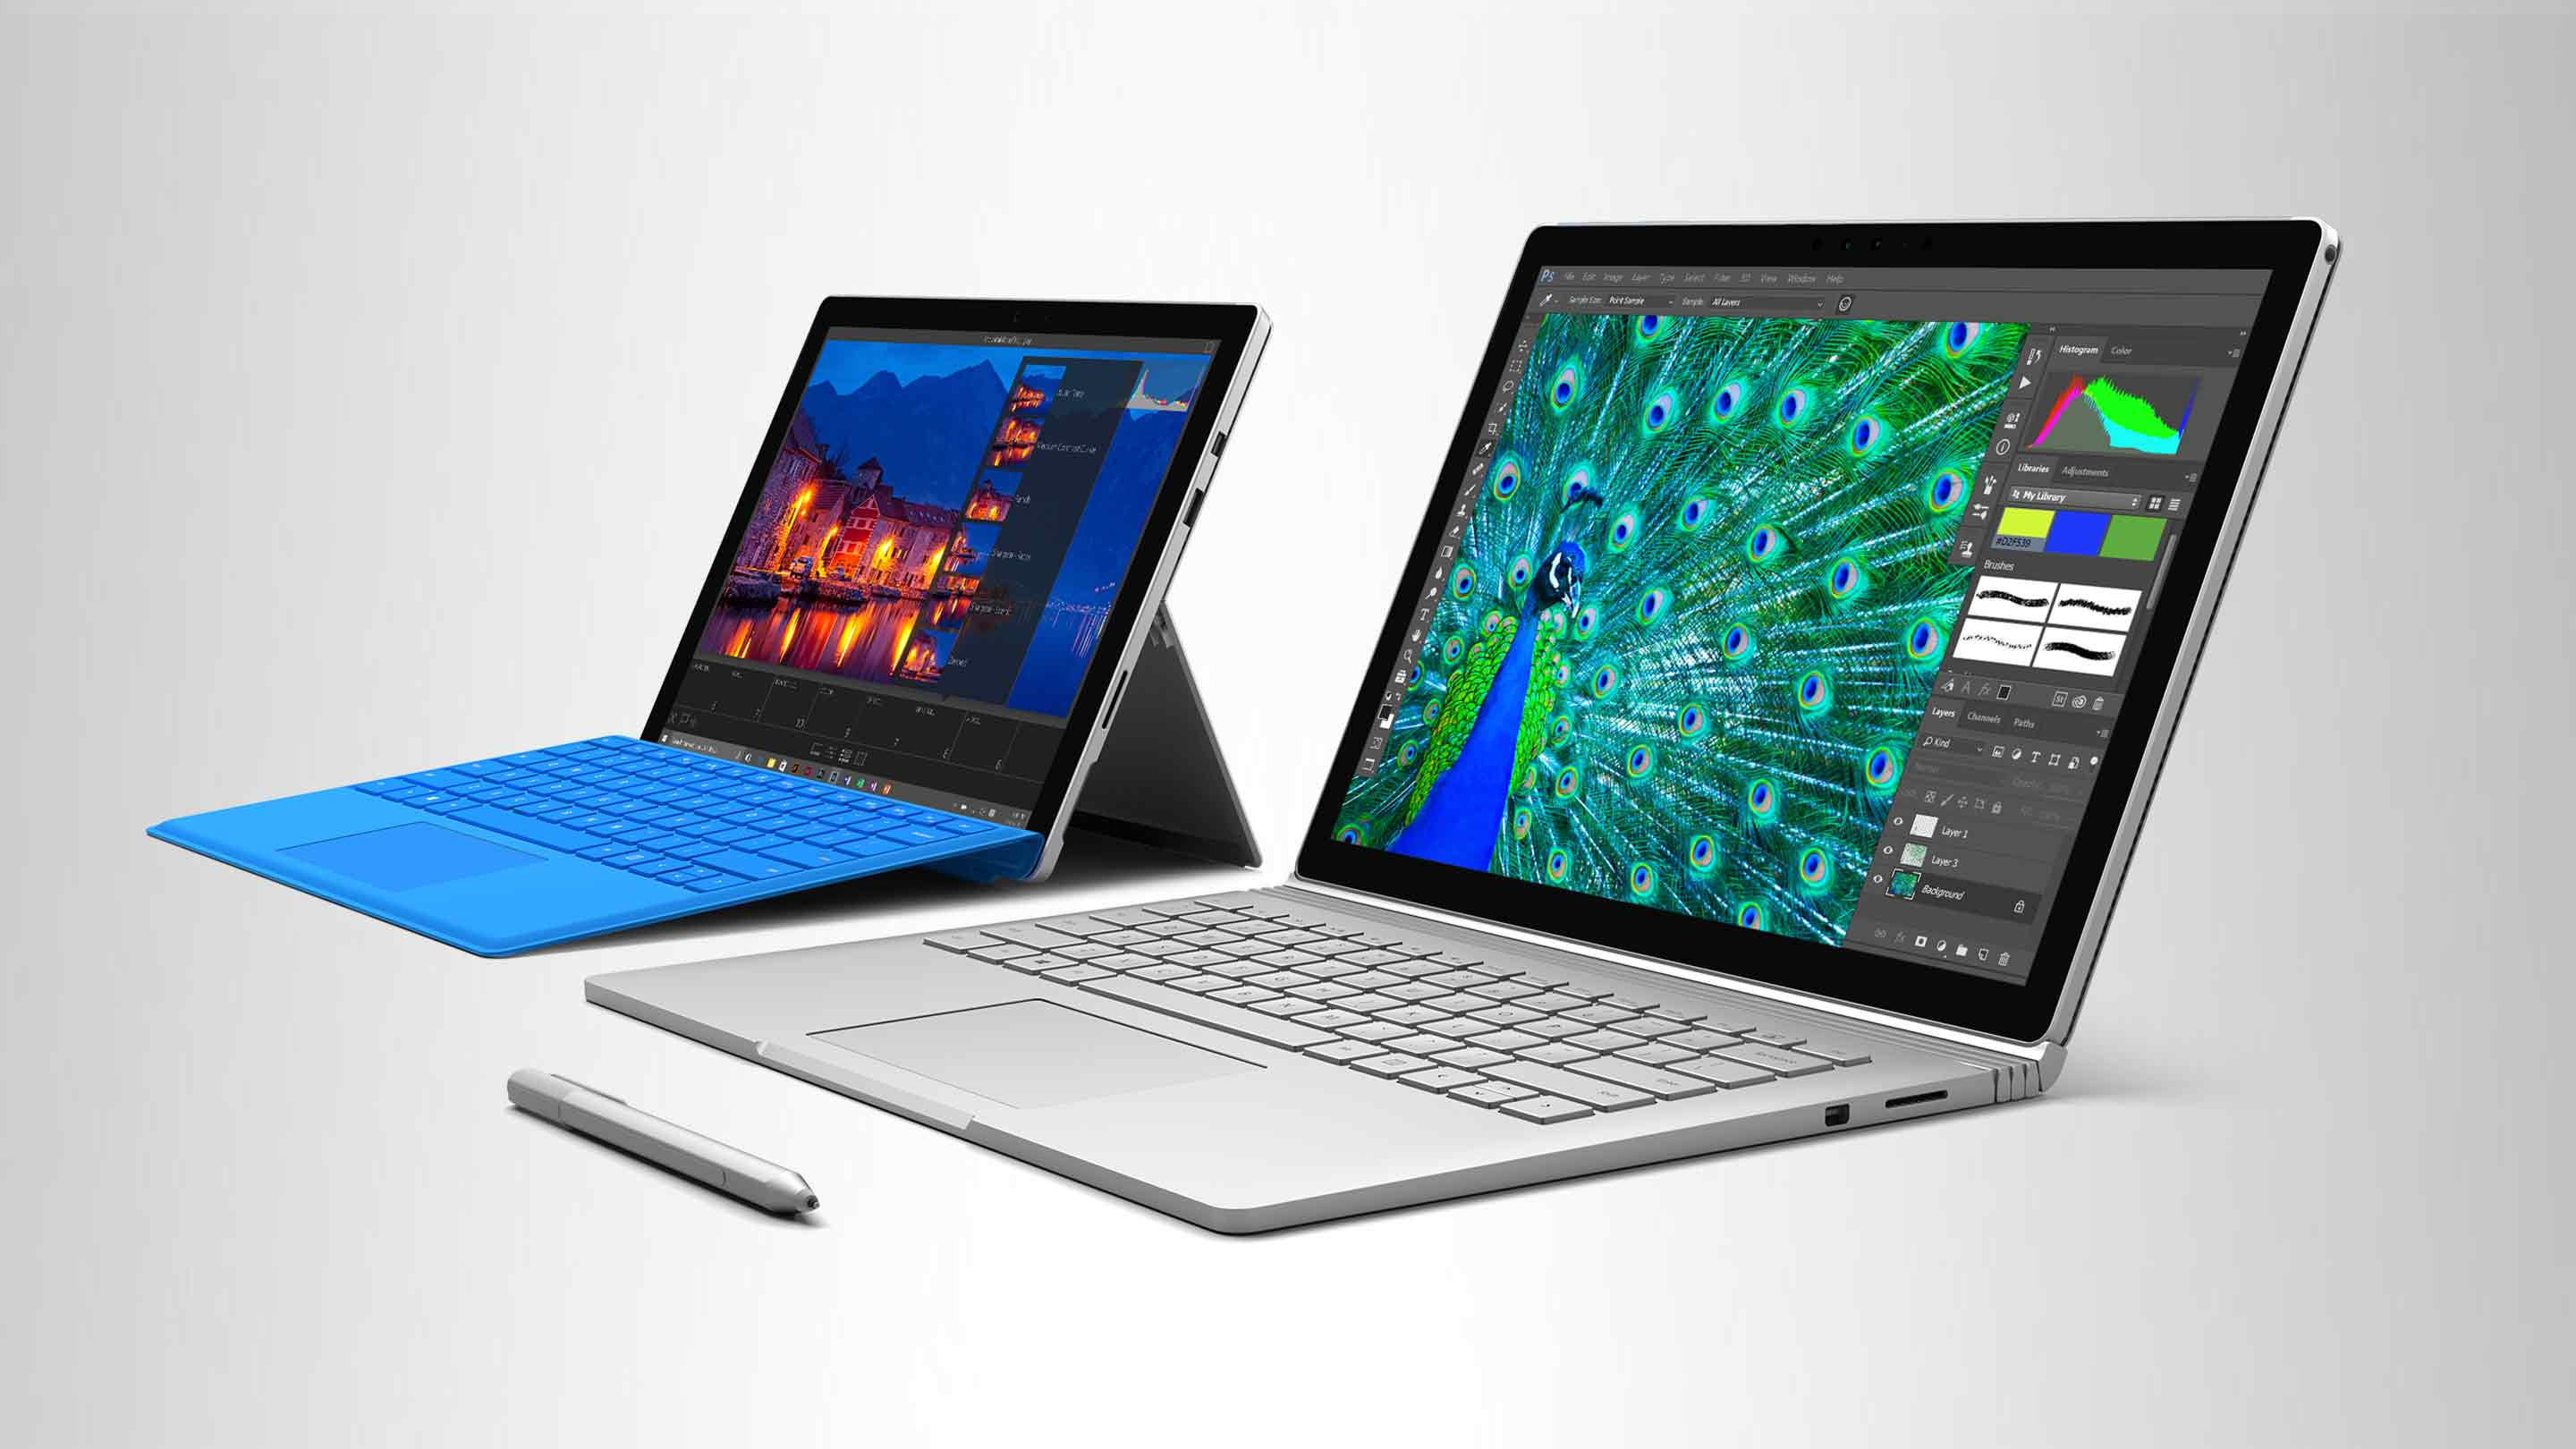 Surface Book e Surface Pro 4